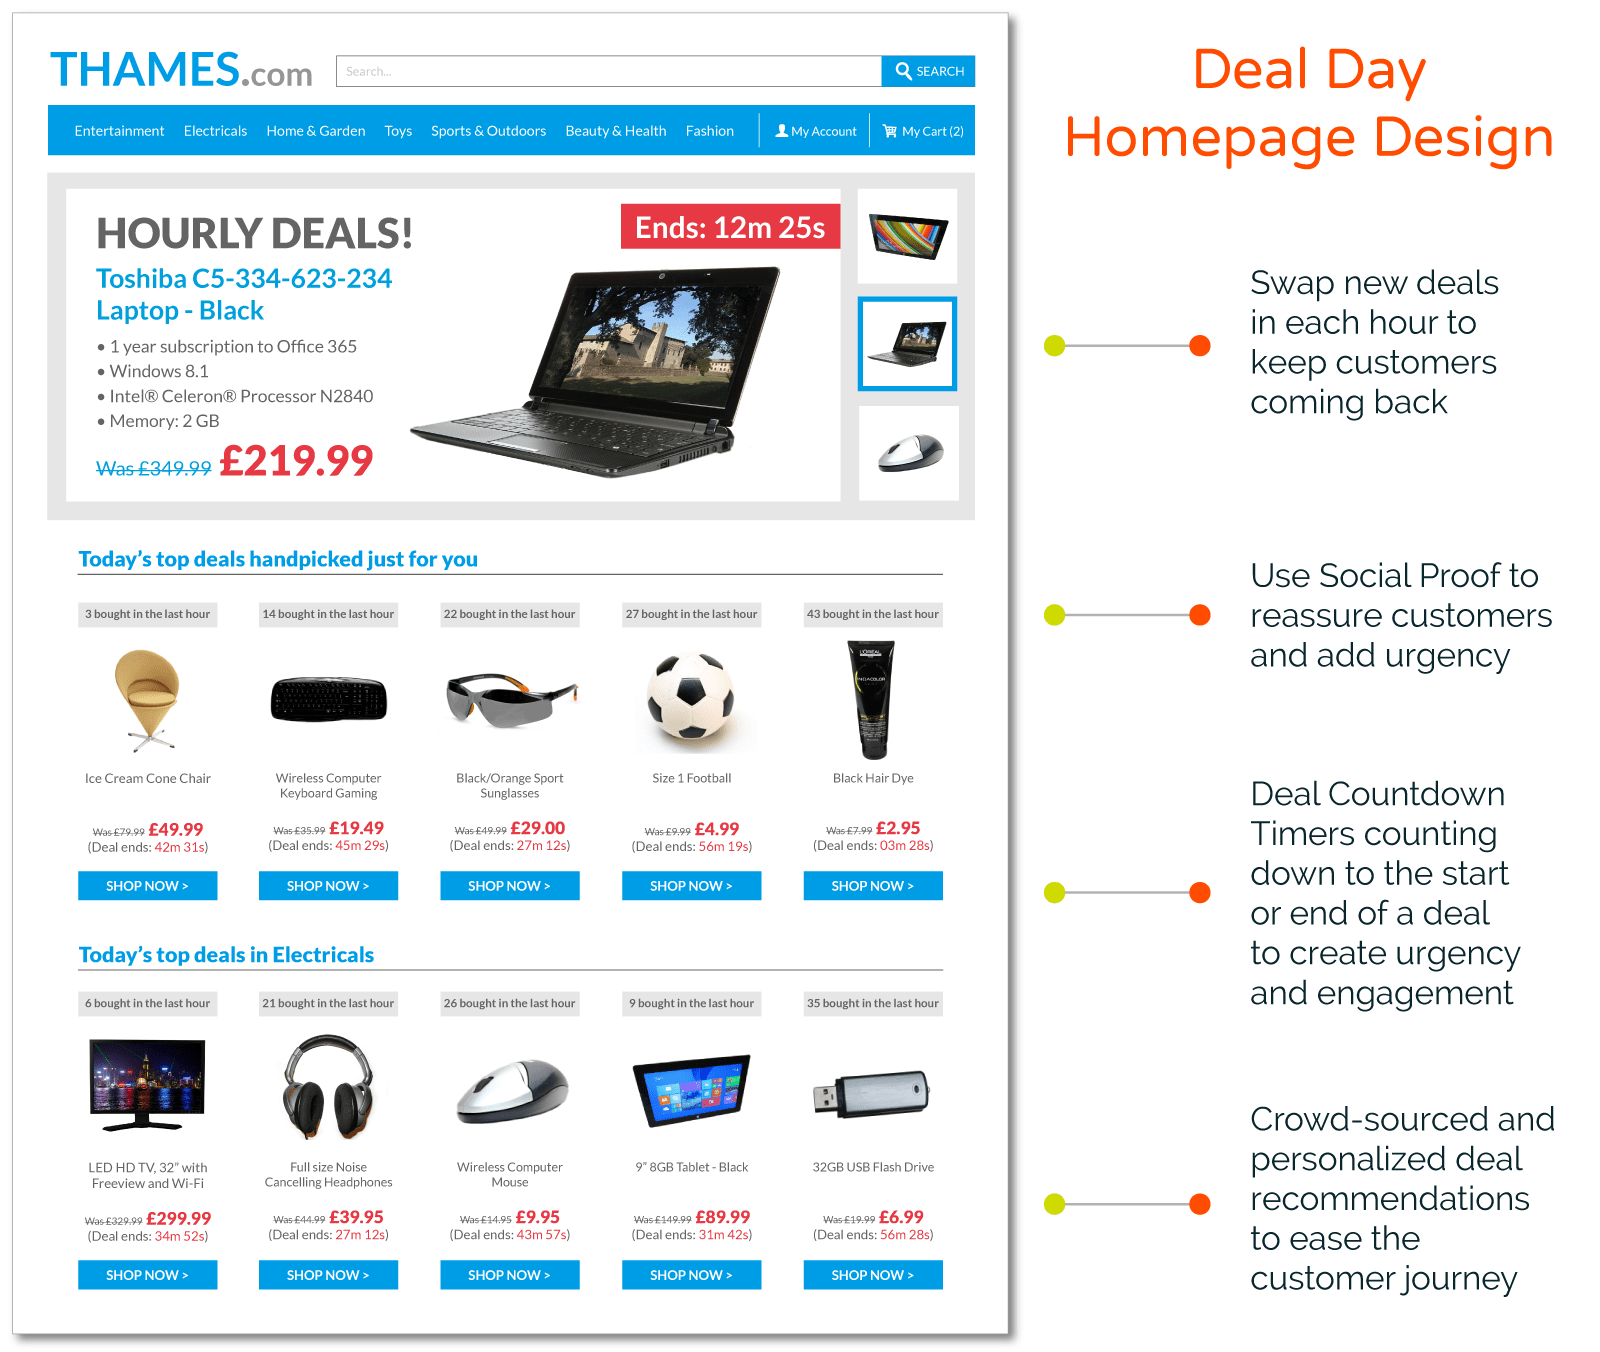 Deal Day Homepage Design  Swap new deals in each hour to keep customers coming back  Use Social Proof to reassure customers and add urgency  Deal Countdown Timers counting down to the start or end of a deal to create urgency and engagement  Crowd-sourced and personalized deal recommendations to ease the customer journey